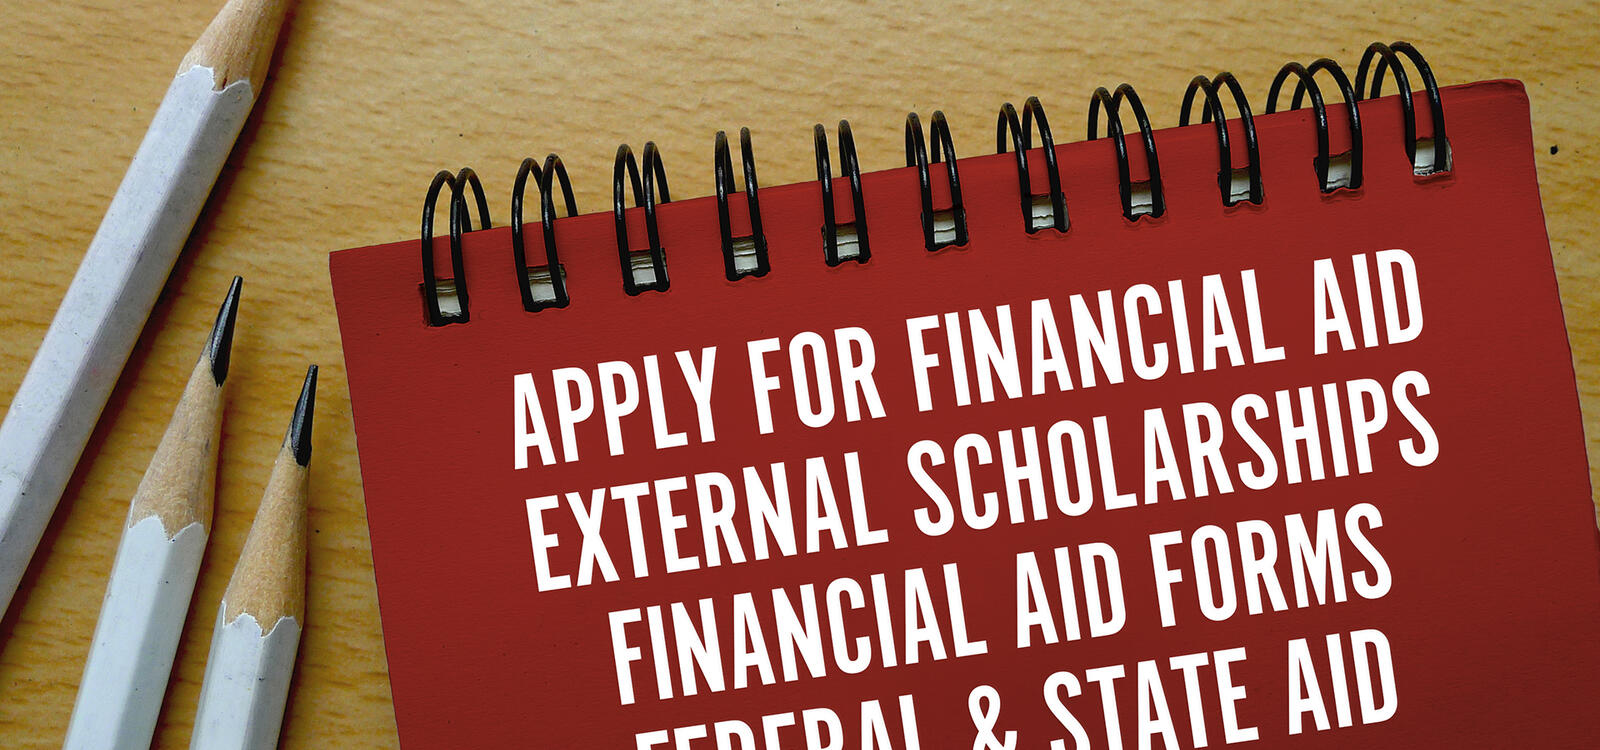 On a red notebook is a note encouraging students to apply for financial aid, external scholarships and more.